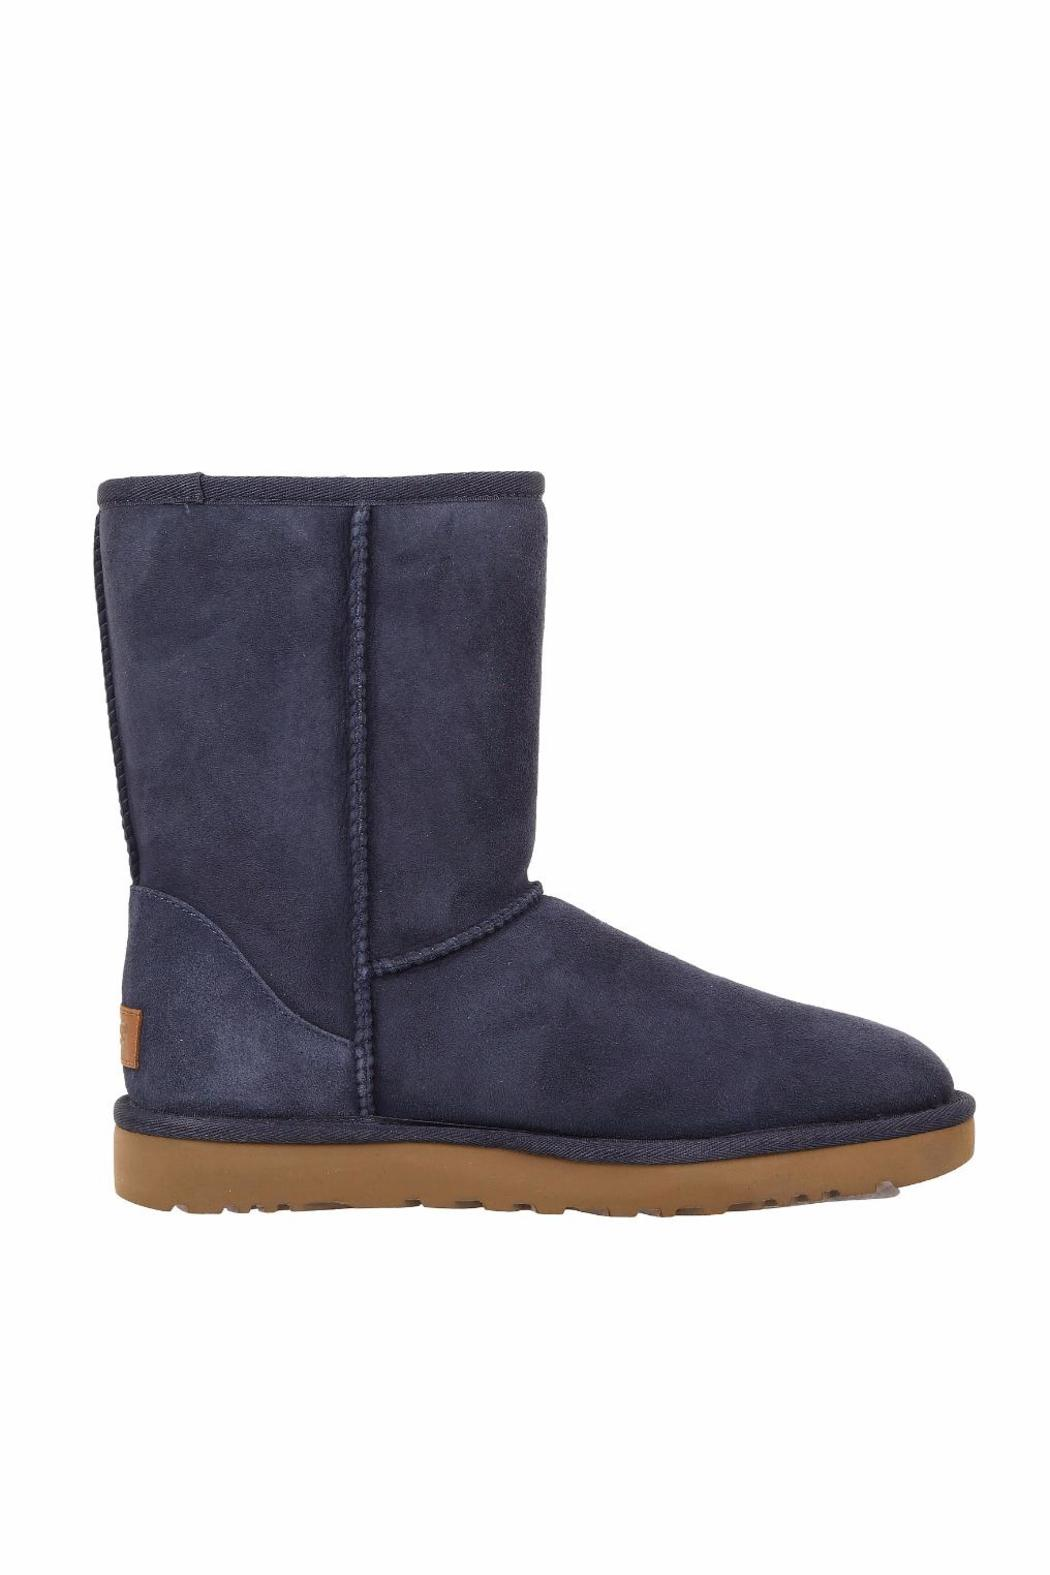 UGG Australia Ugg Classic Short Boots - Side Cropped Image